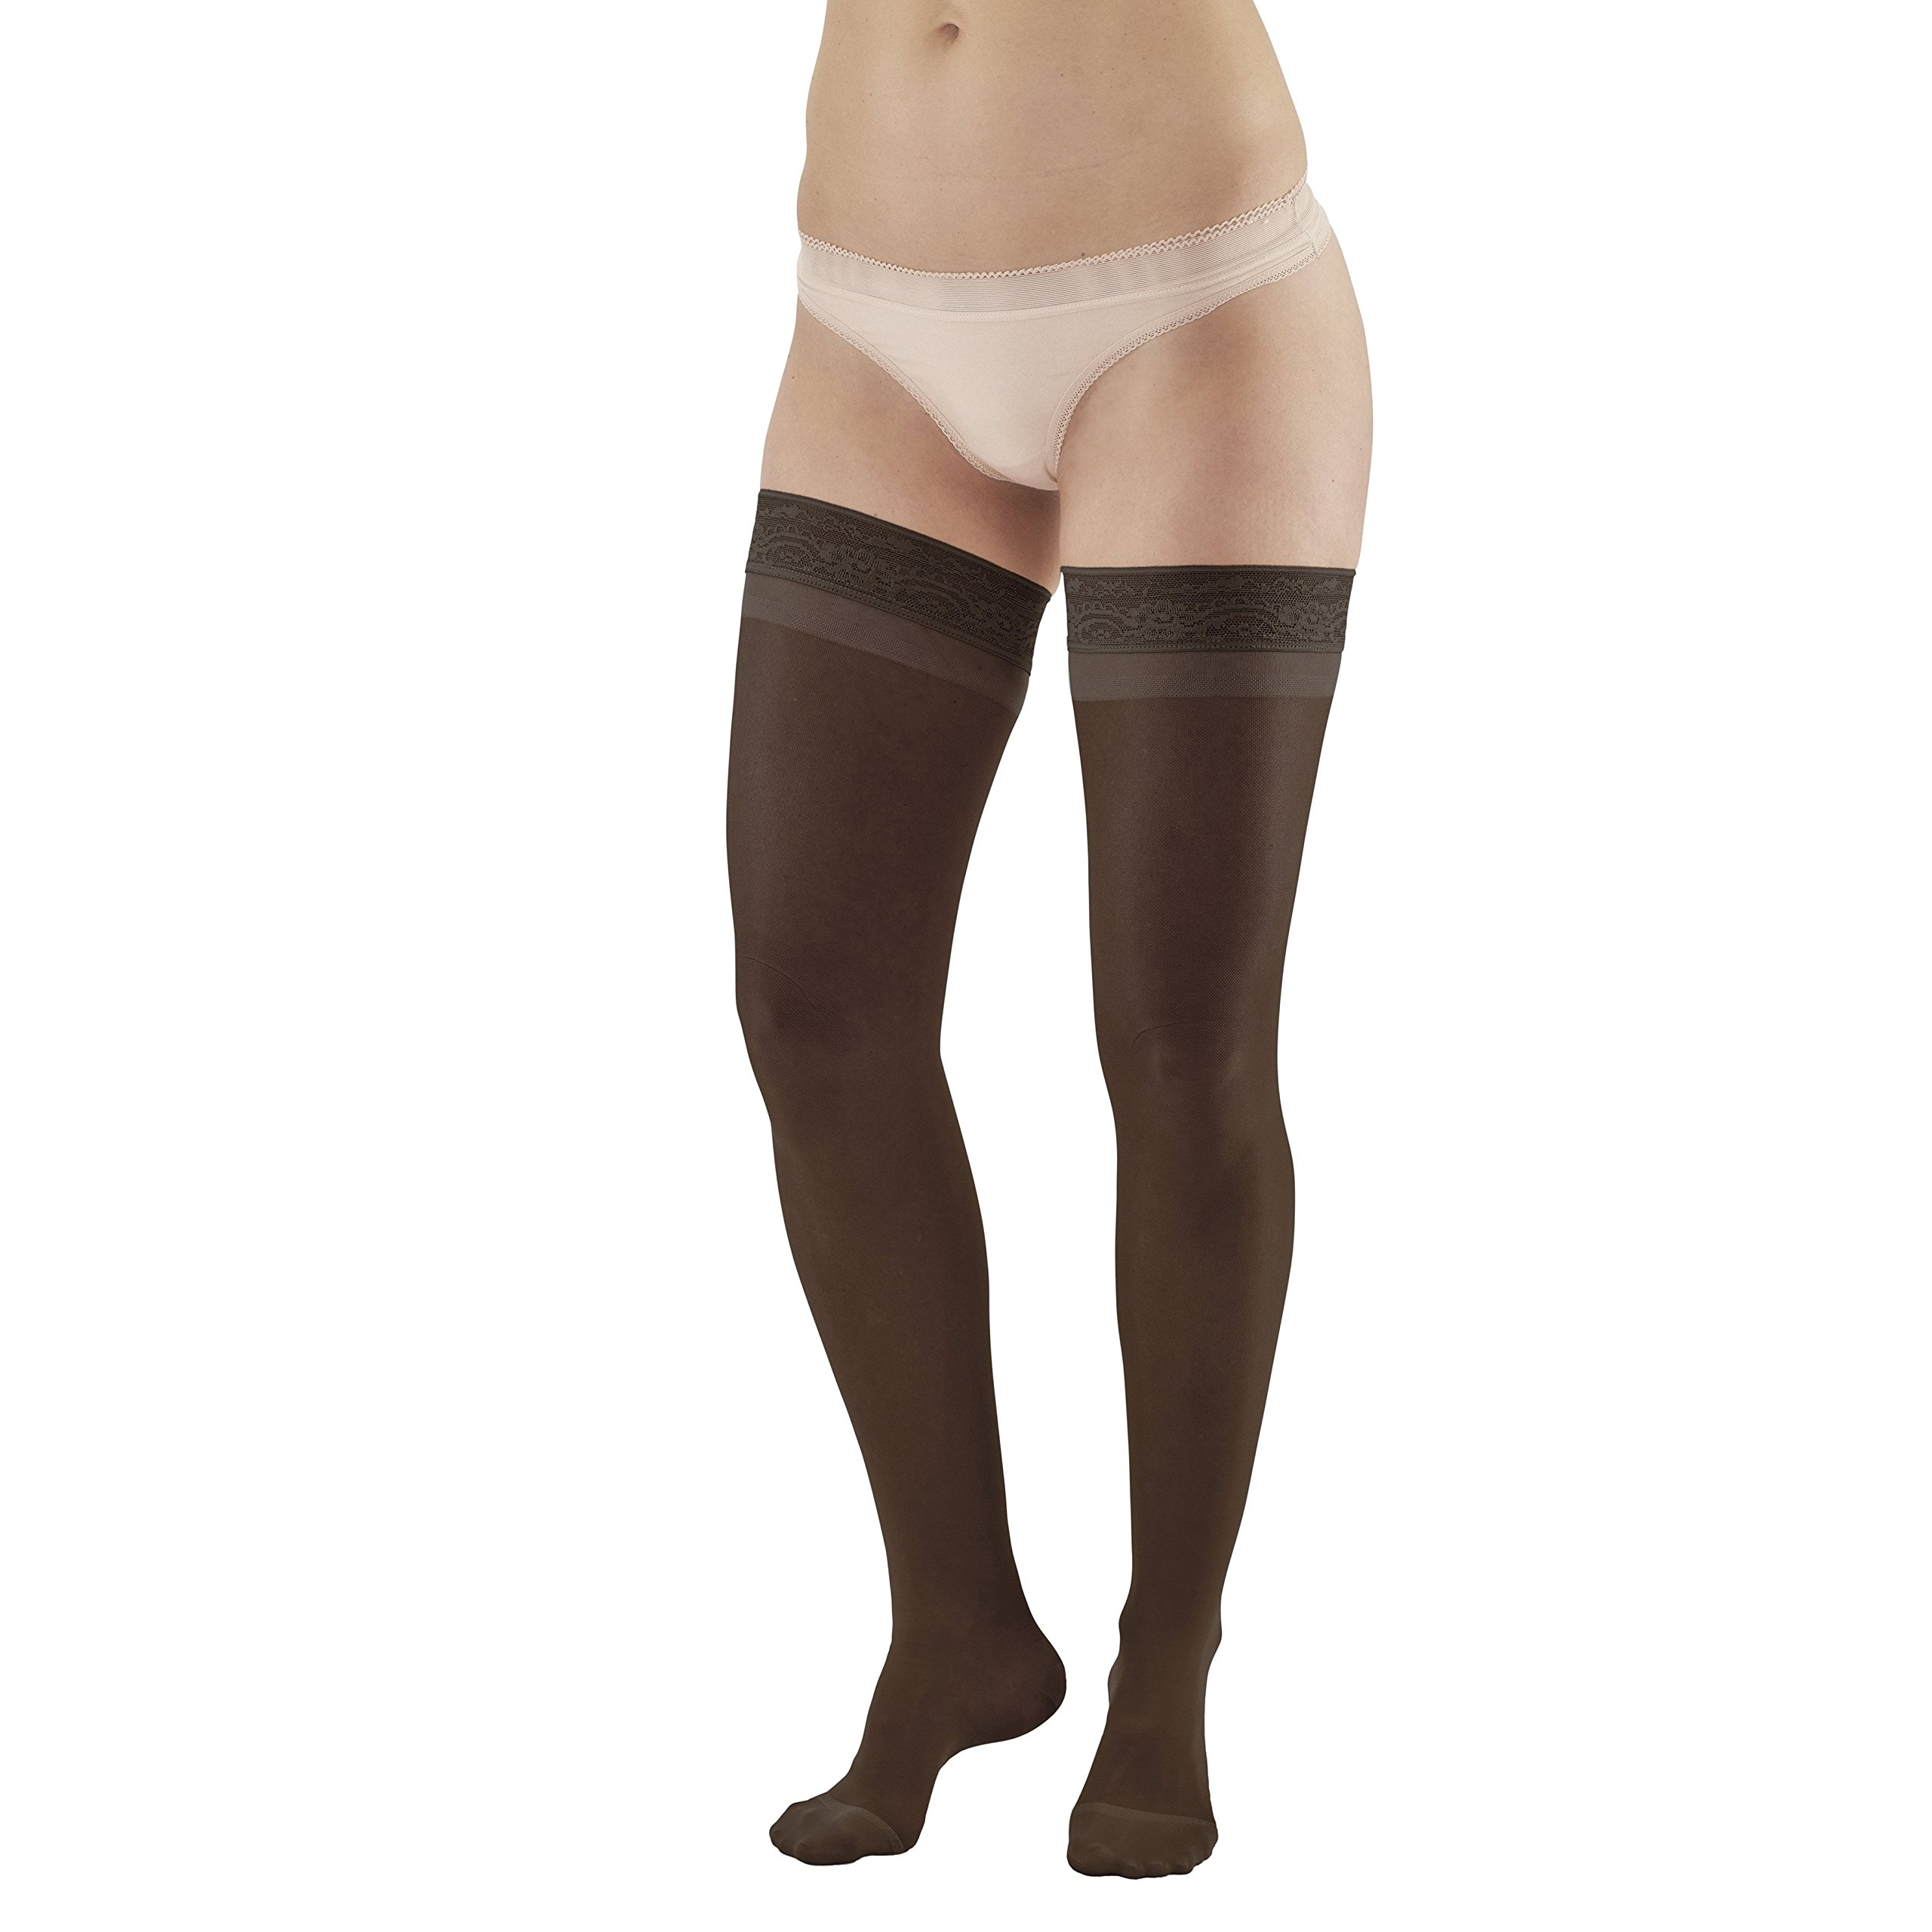 Ames Walker Women's AW Style 8 Sheer Support Closed Toe Compression Thigh High